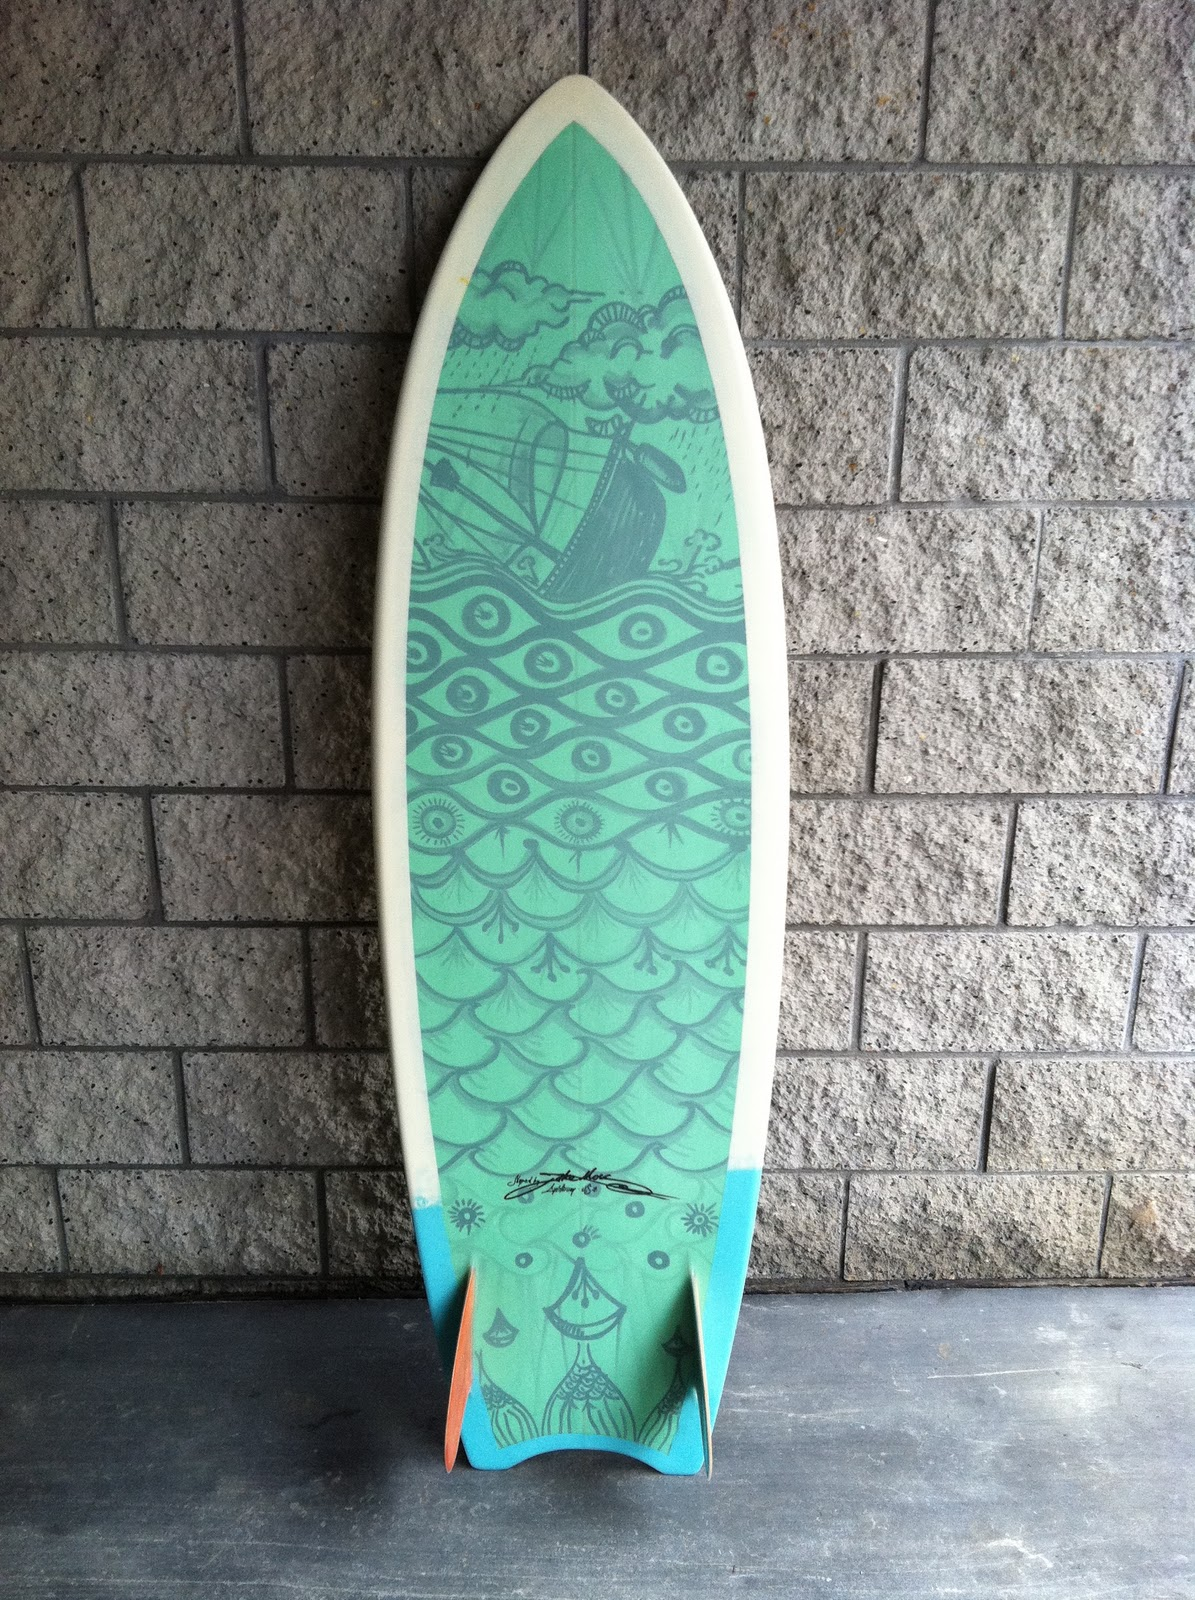 Jake Moss Surfboards: Eco-surfboards